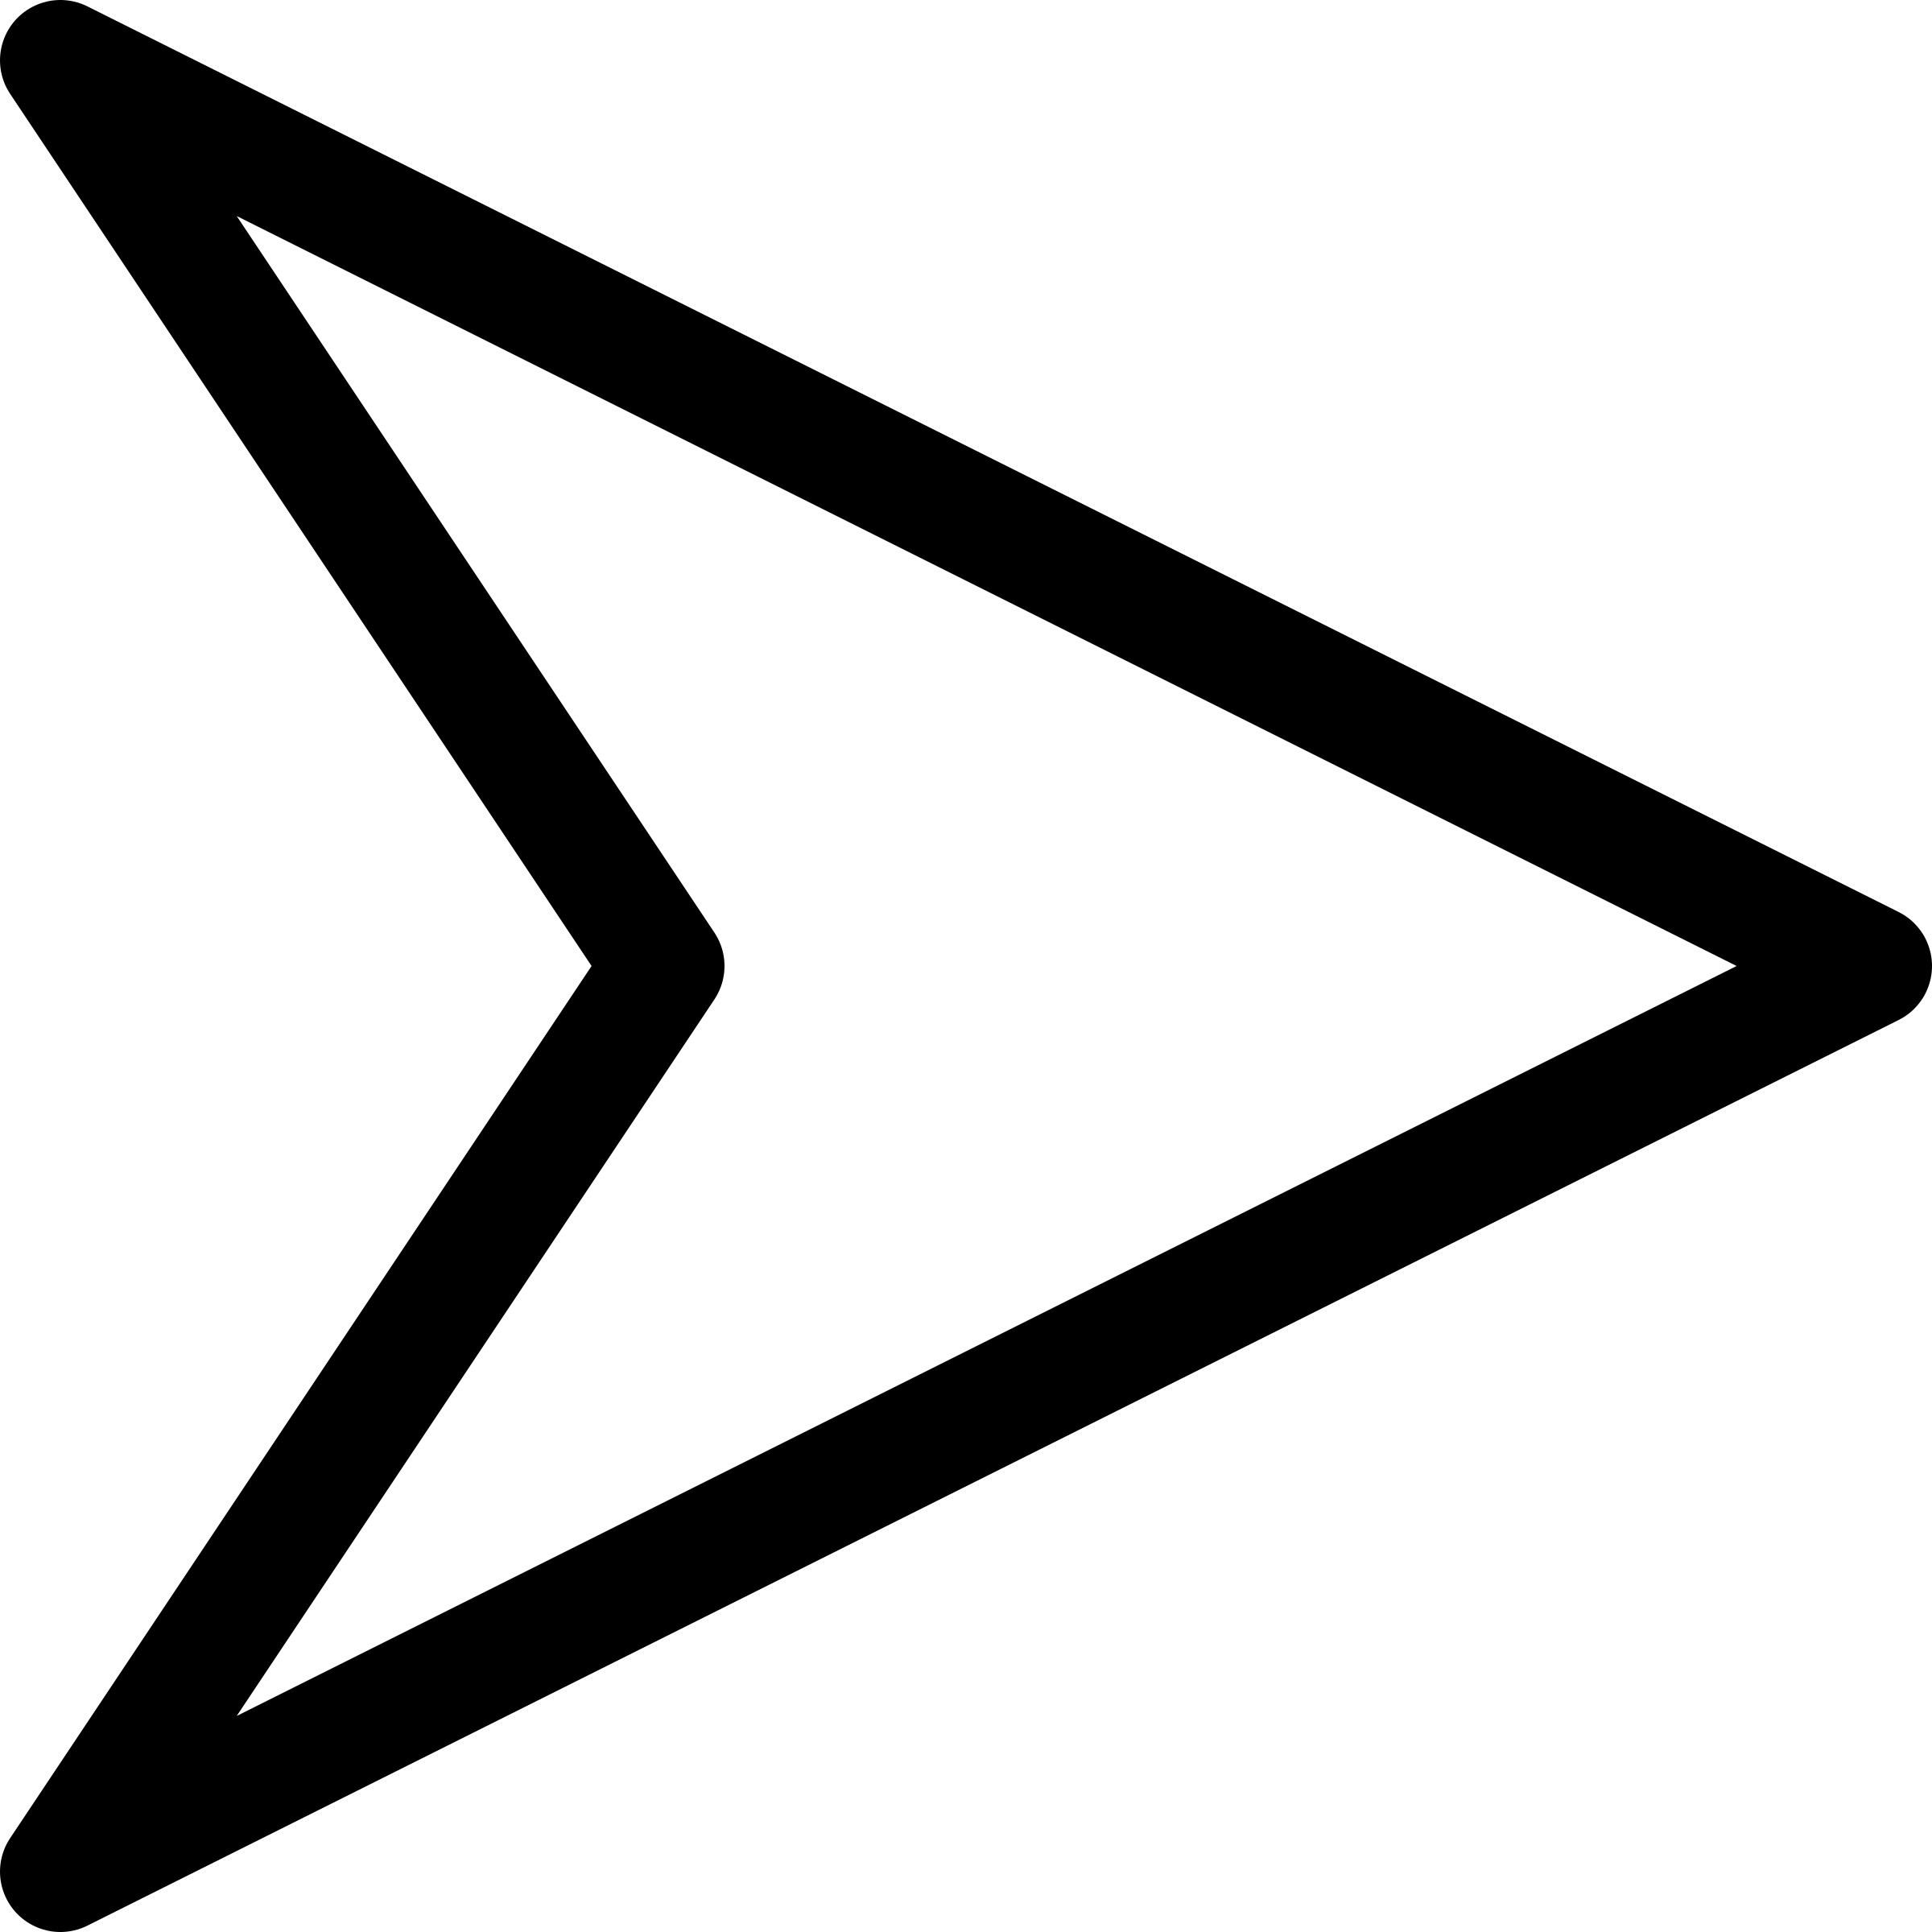 Triangle Arrow Right transparent PNG - StickPNG